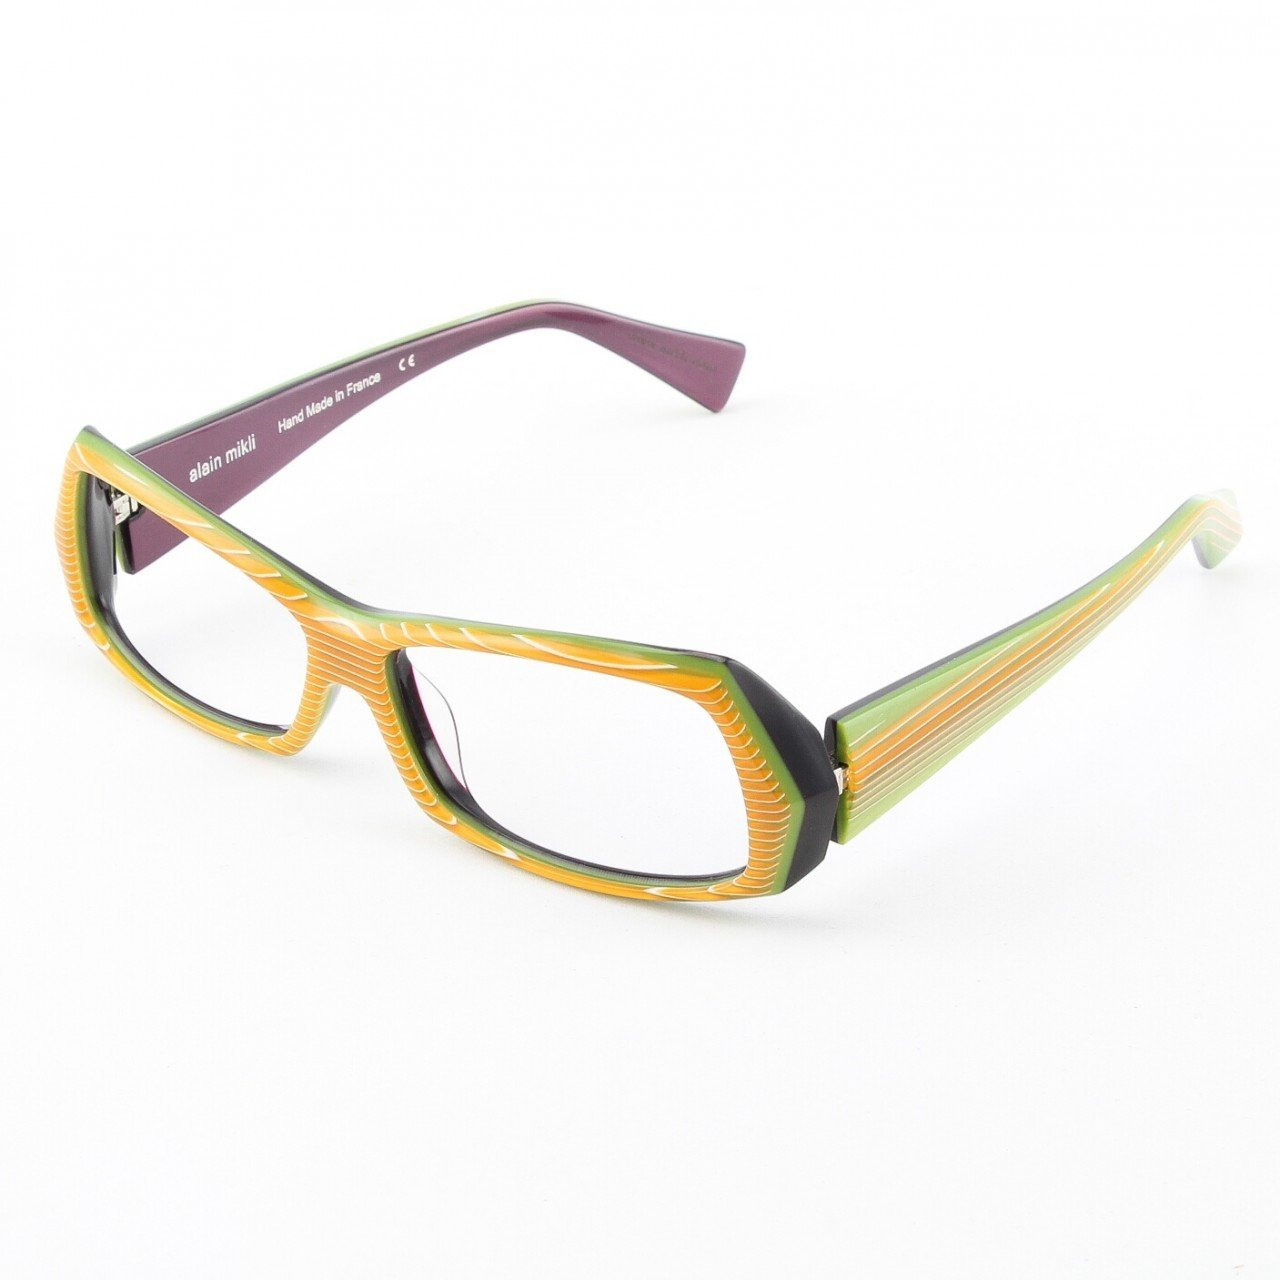 Alain Mikli Eyeglasses AL0945 Col. 6 Yellow Gold Stripe with Lime Green Accent